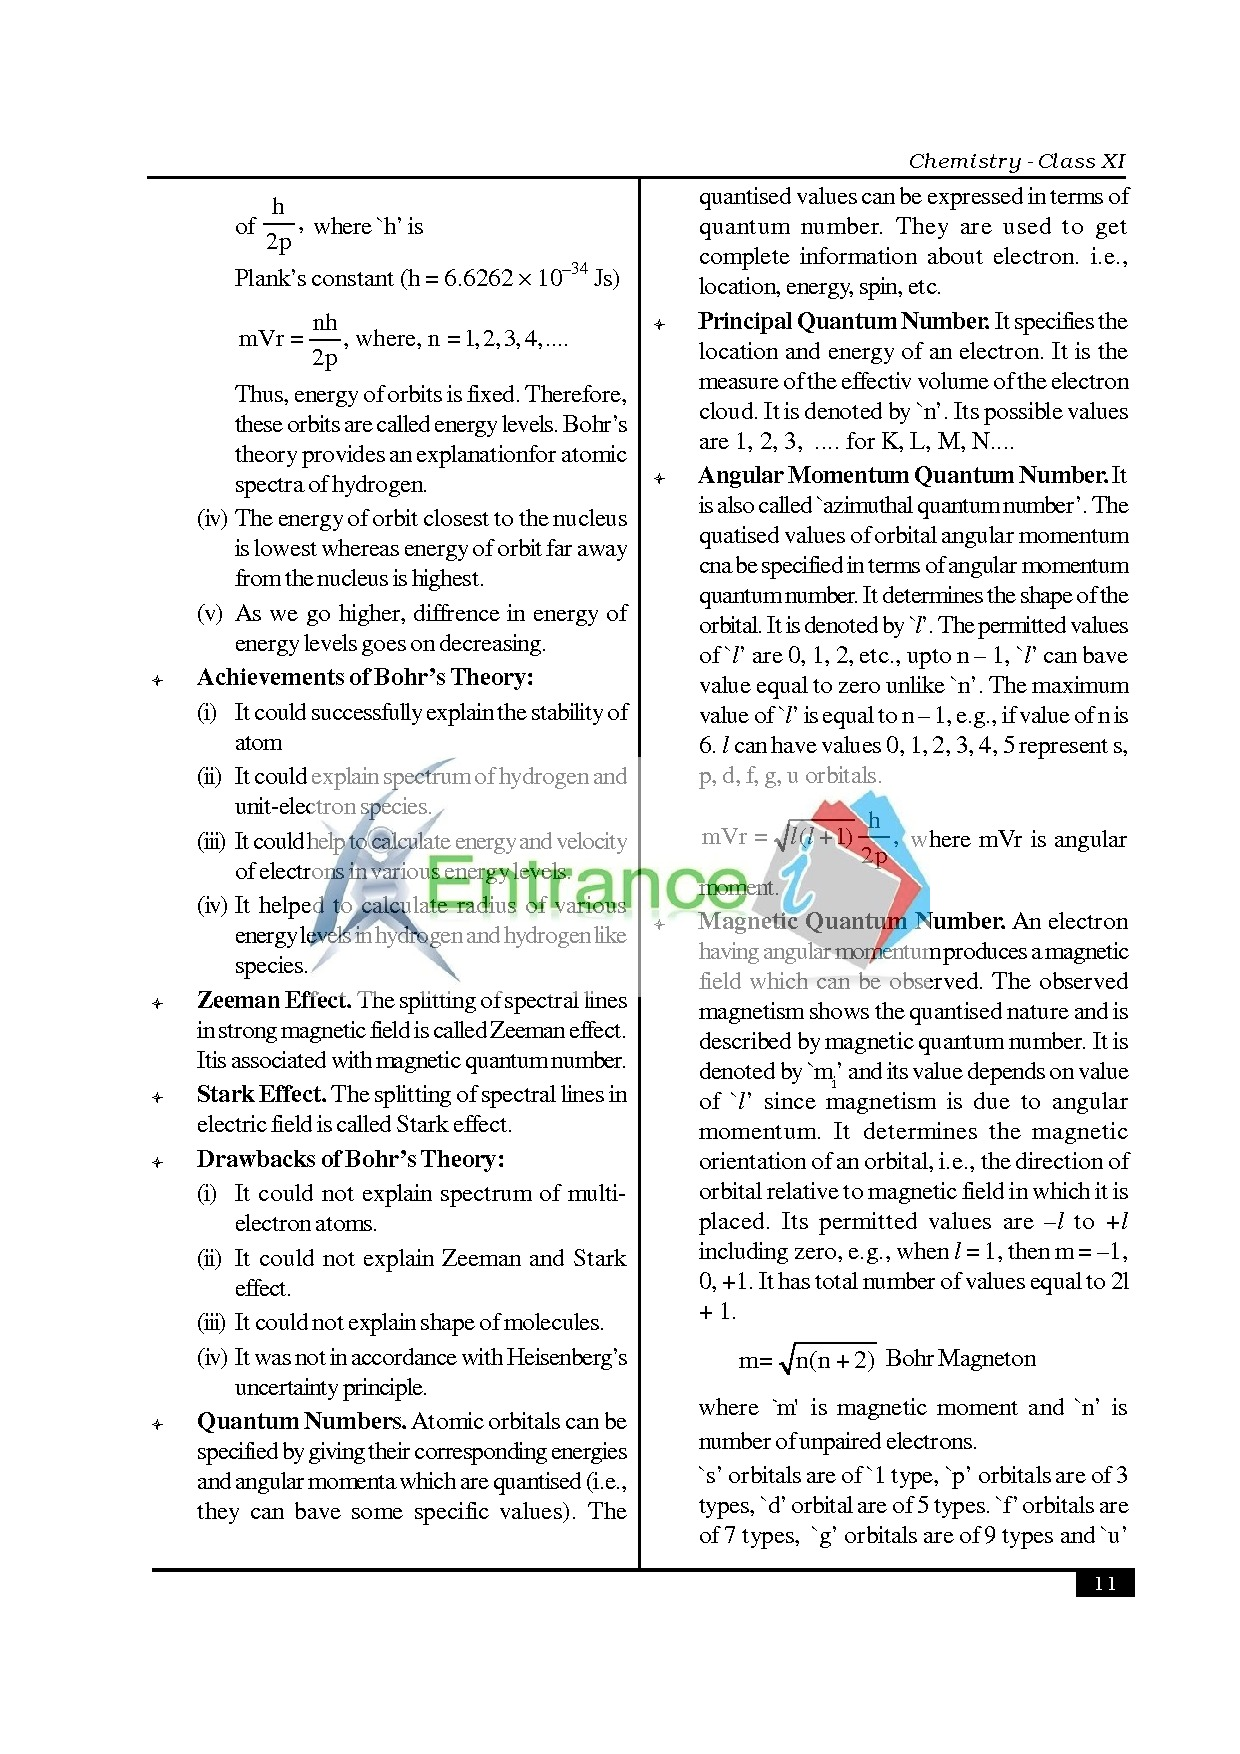 Chemistry Formula For Class 11 Chapter Atomic Structure